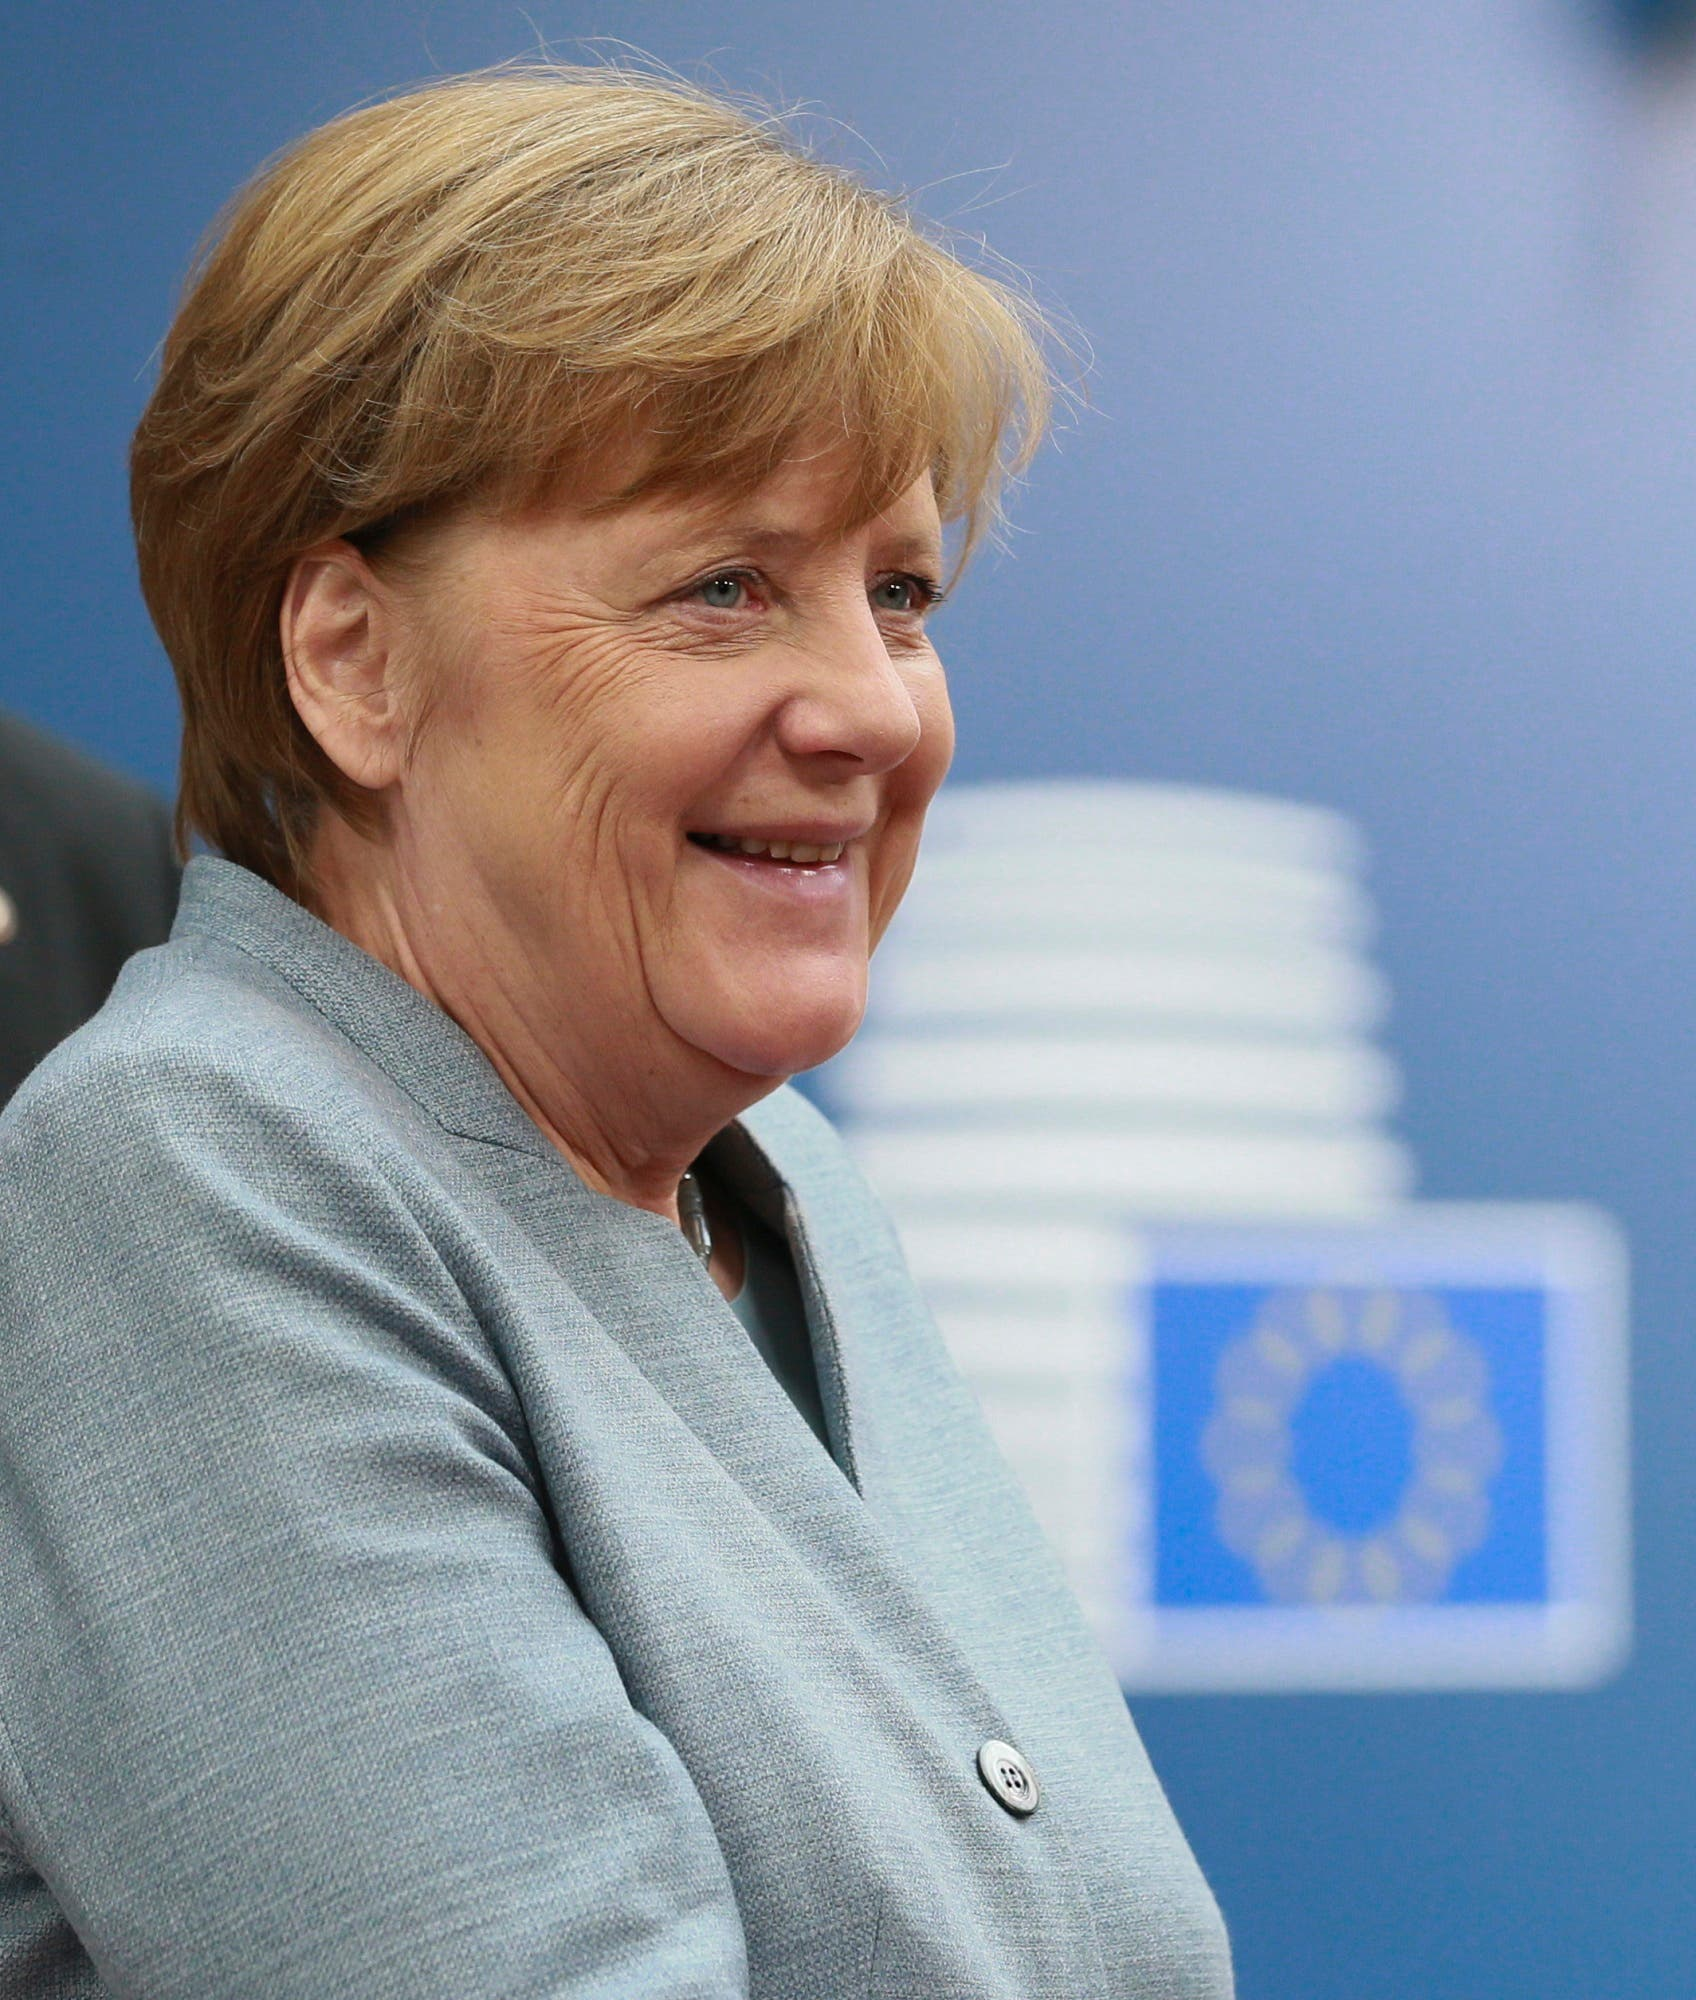 German Chancellor Angela Merkel arrives for an EU summit at the Europa building in Brussels on Saturday, April 29, 2017. EU leaders met on Saturday for the first time as the formal European Council of 27 to adopt guidelines for the upcoming Brexit negotiations. (Olivier Hoslet, Pool Photo via AP)